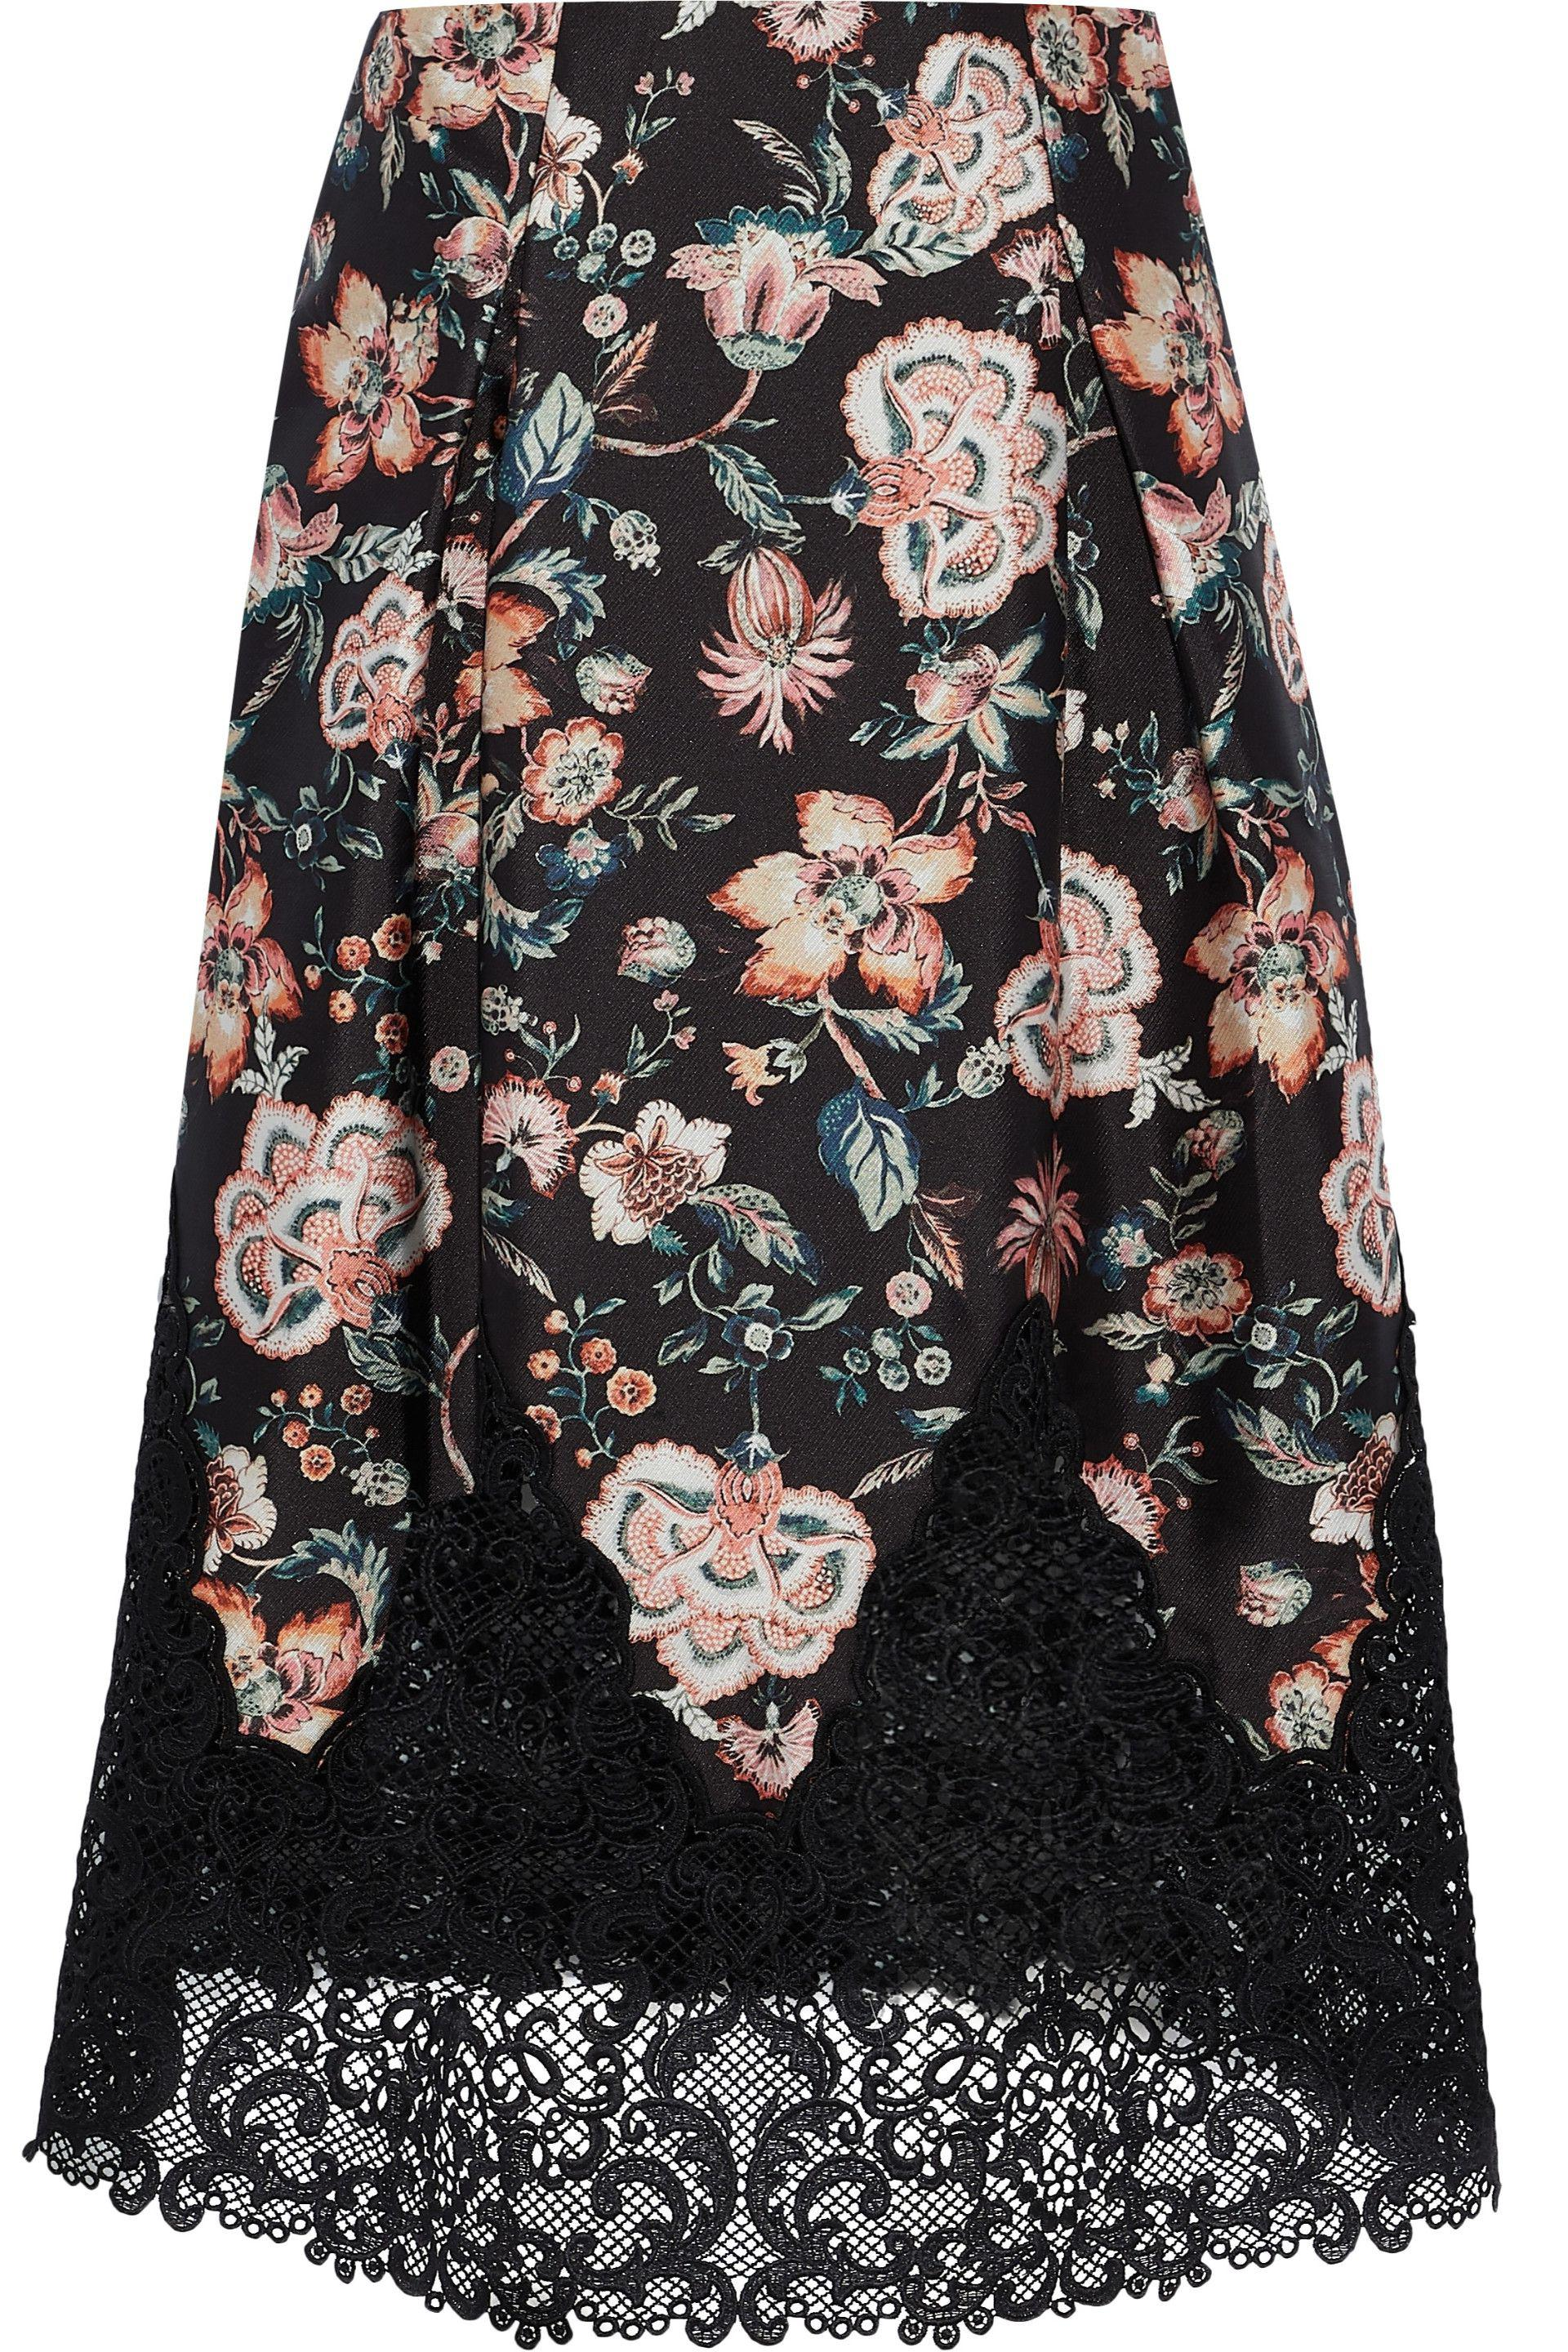 Sachin & Babi Woman Pleated Striped Corded Lace Skirt Black Size 10 Sachin & Babi Outlet Locations Unisex qy0NCt374